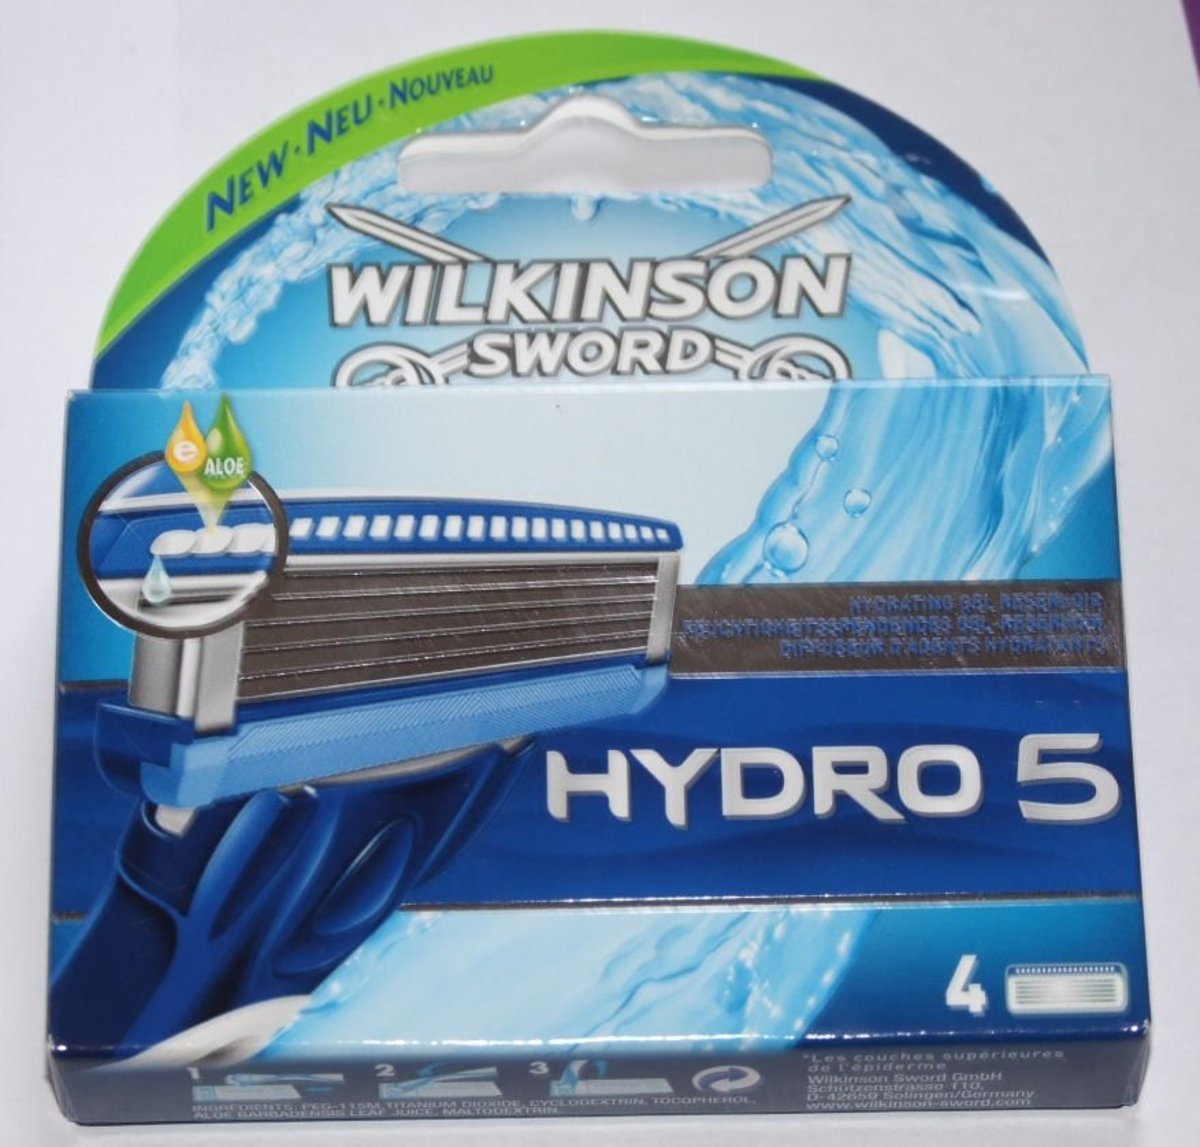 Wilkinsons Sword Hydro 5 Review - Vs the Quattro and Gillette Fusion